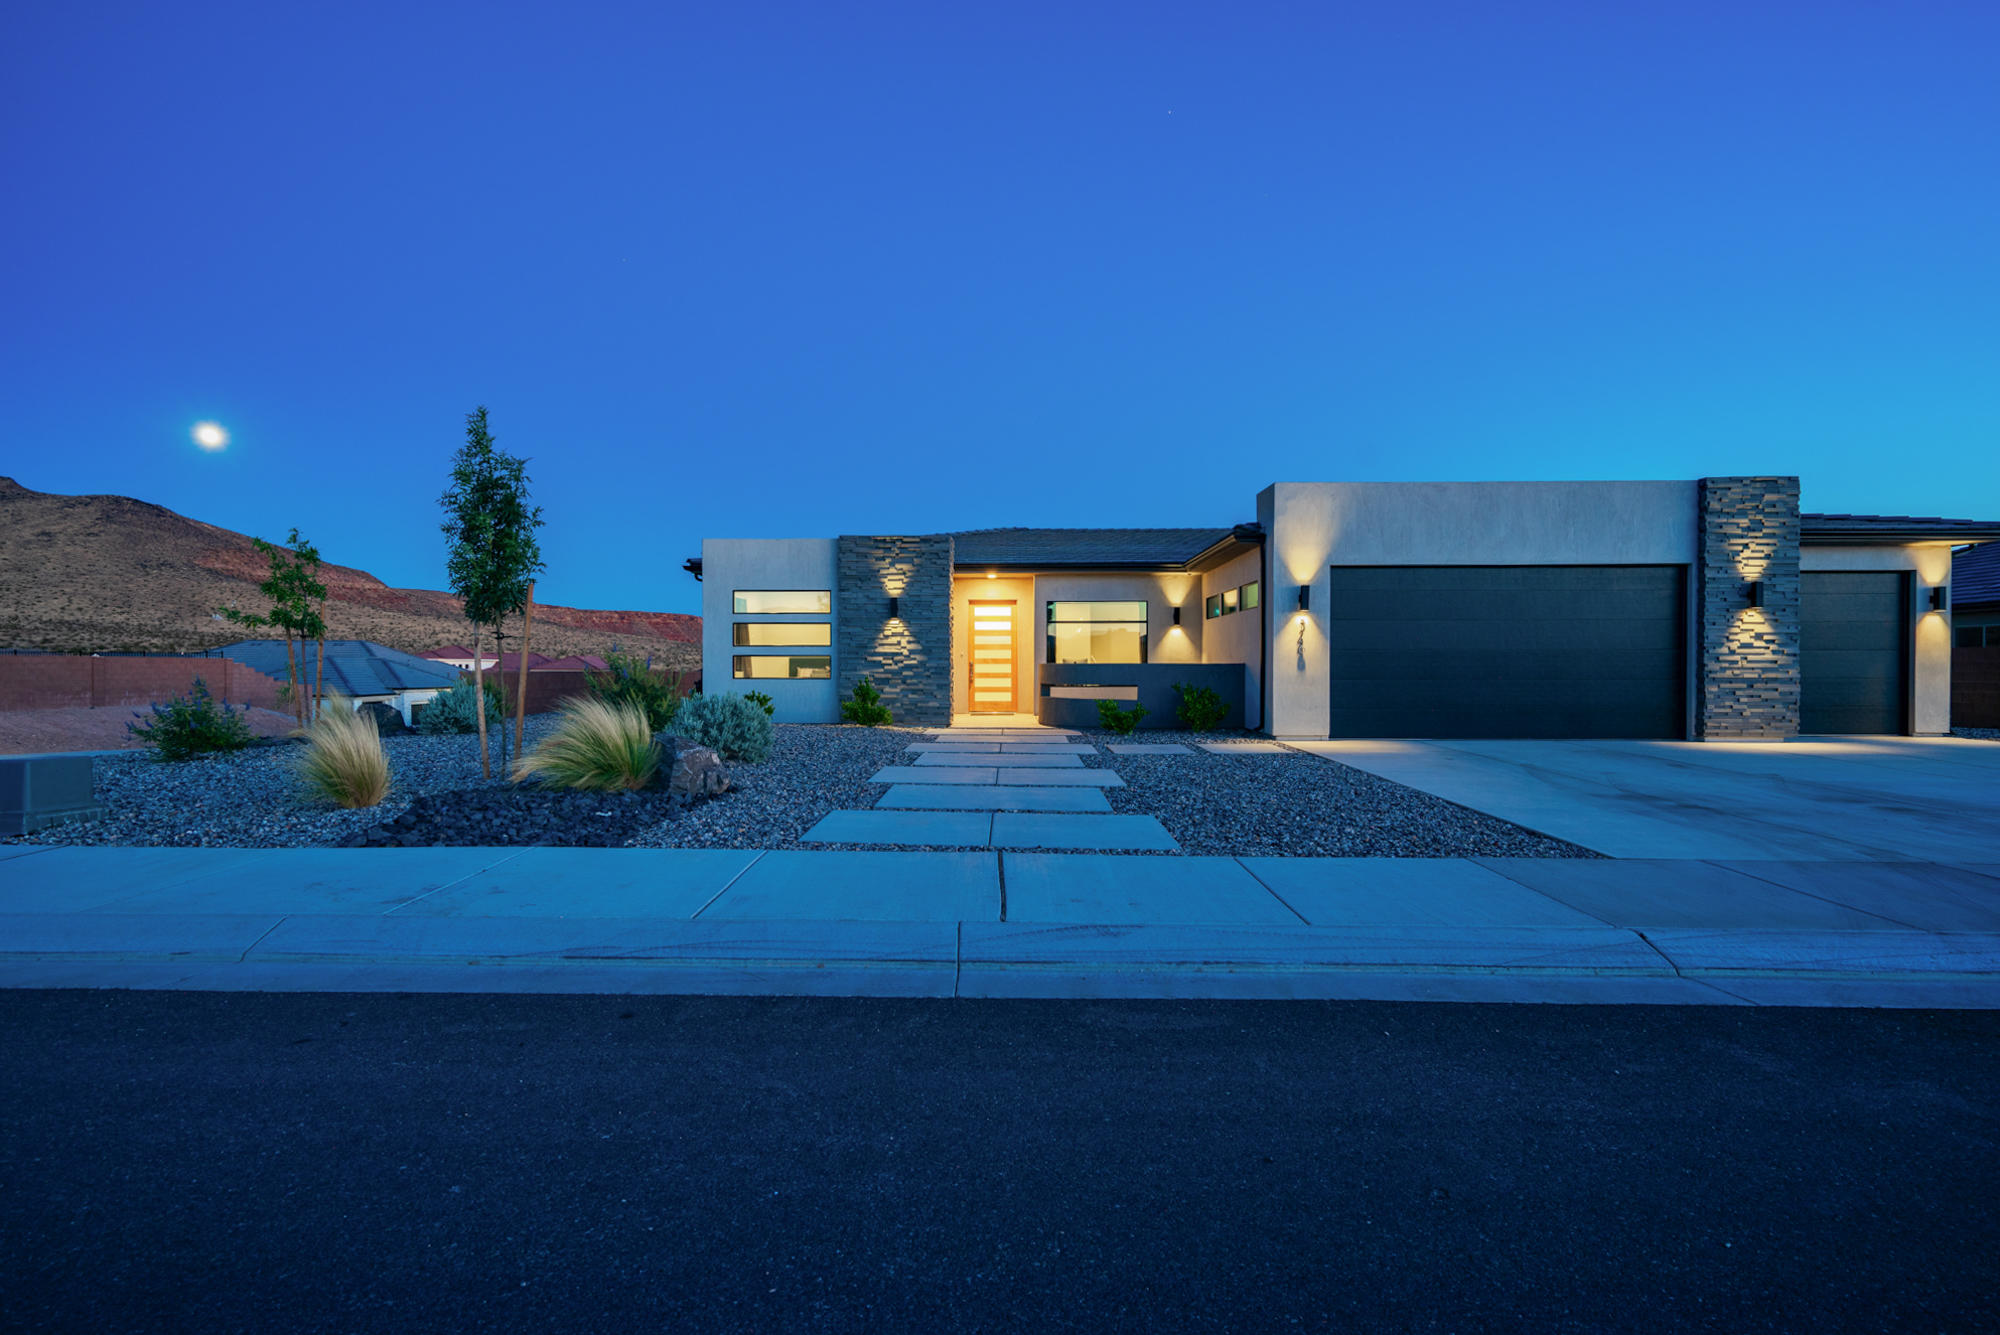 3446 E Blackbrush Dr, St George Ut 84790